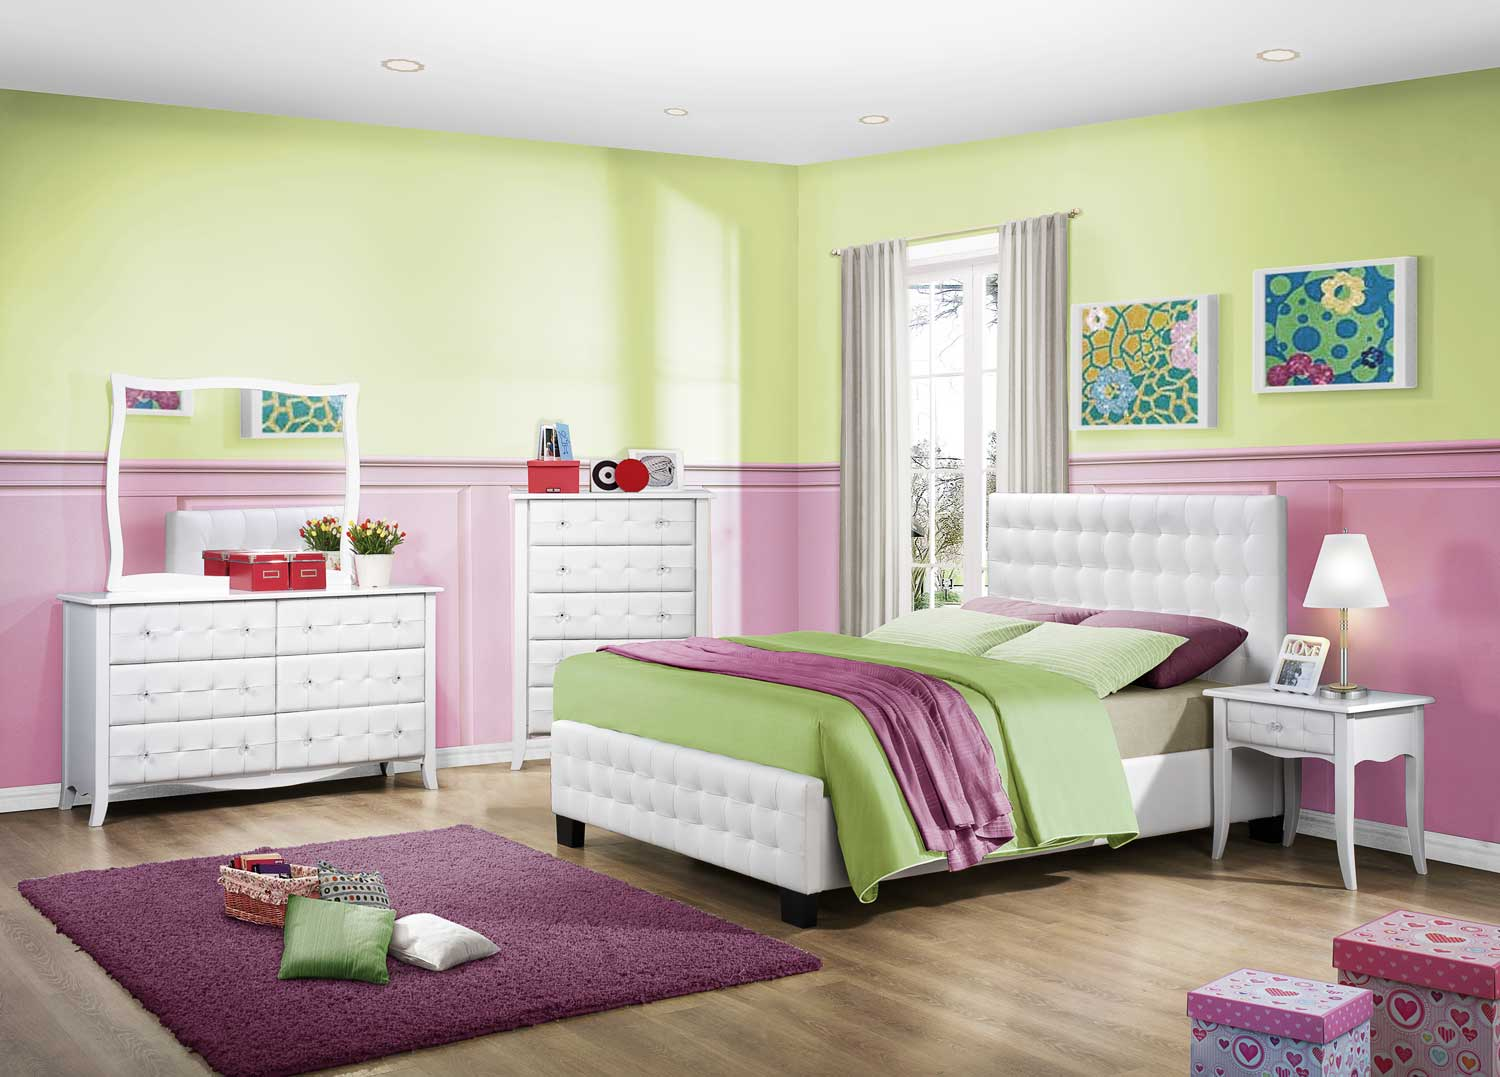 Homelegance Sparkle Upholstered Bedroom Set - White